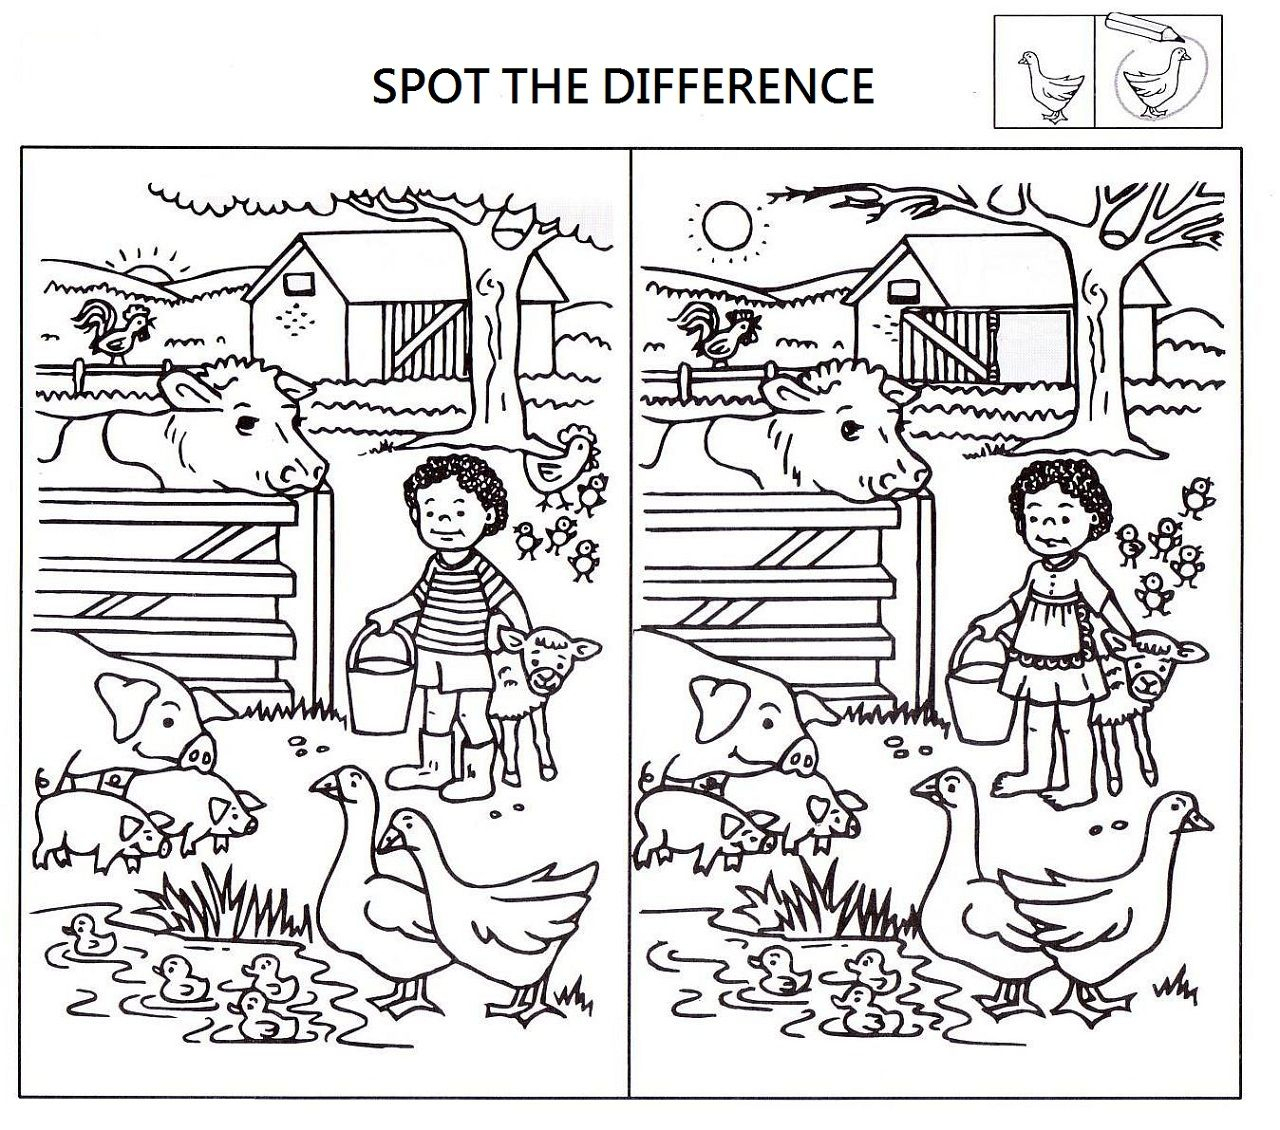 Spot The Difference Worksheets For Kids | Kids Worksheets Printable | Spot The Difference Printable Worksheets For Adults